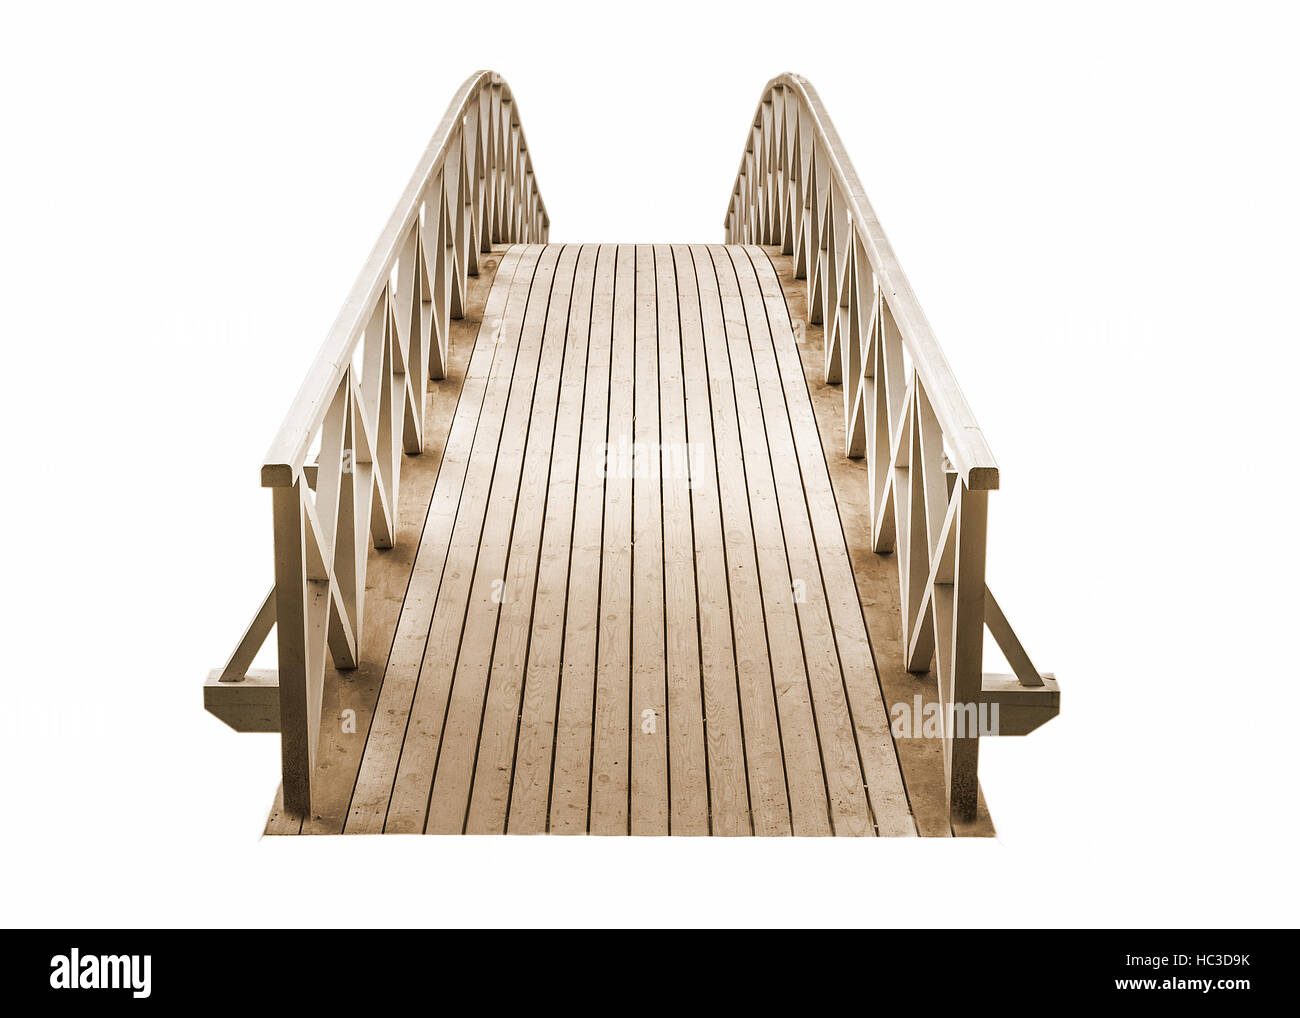 wooden Park foot bridge isolated on a white background - Stock Image